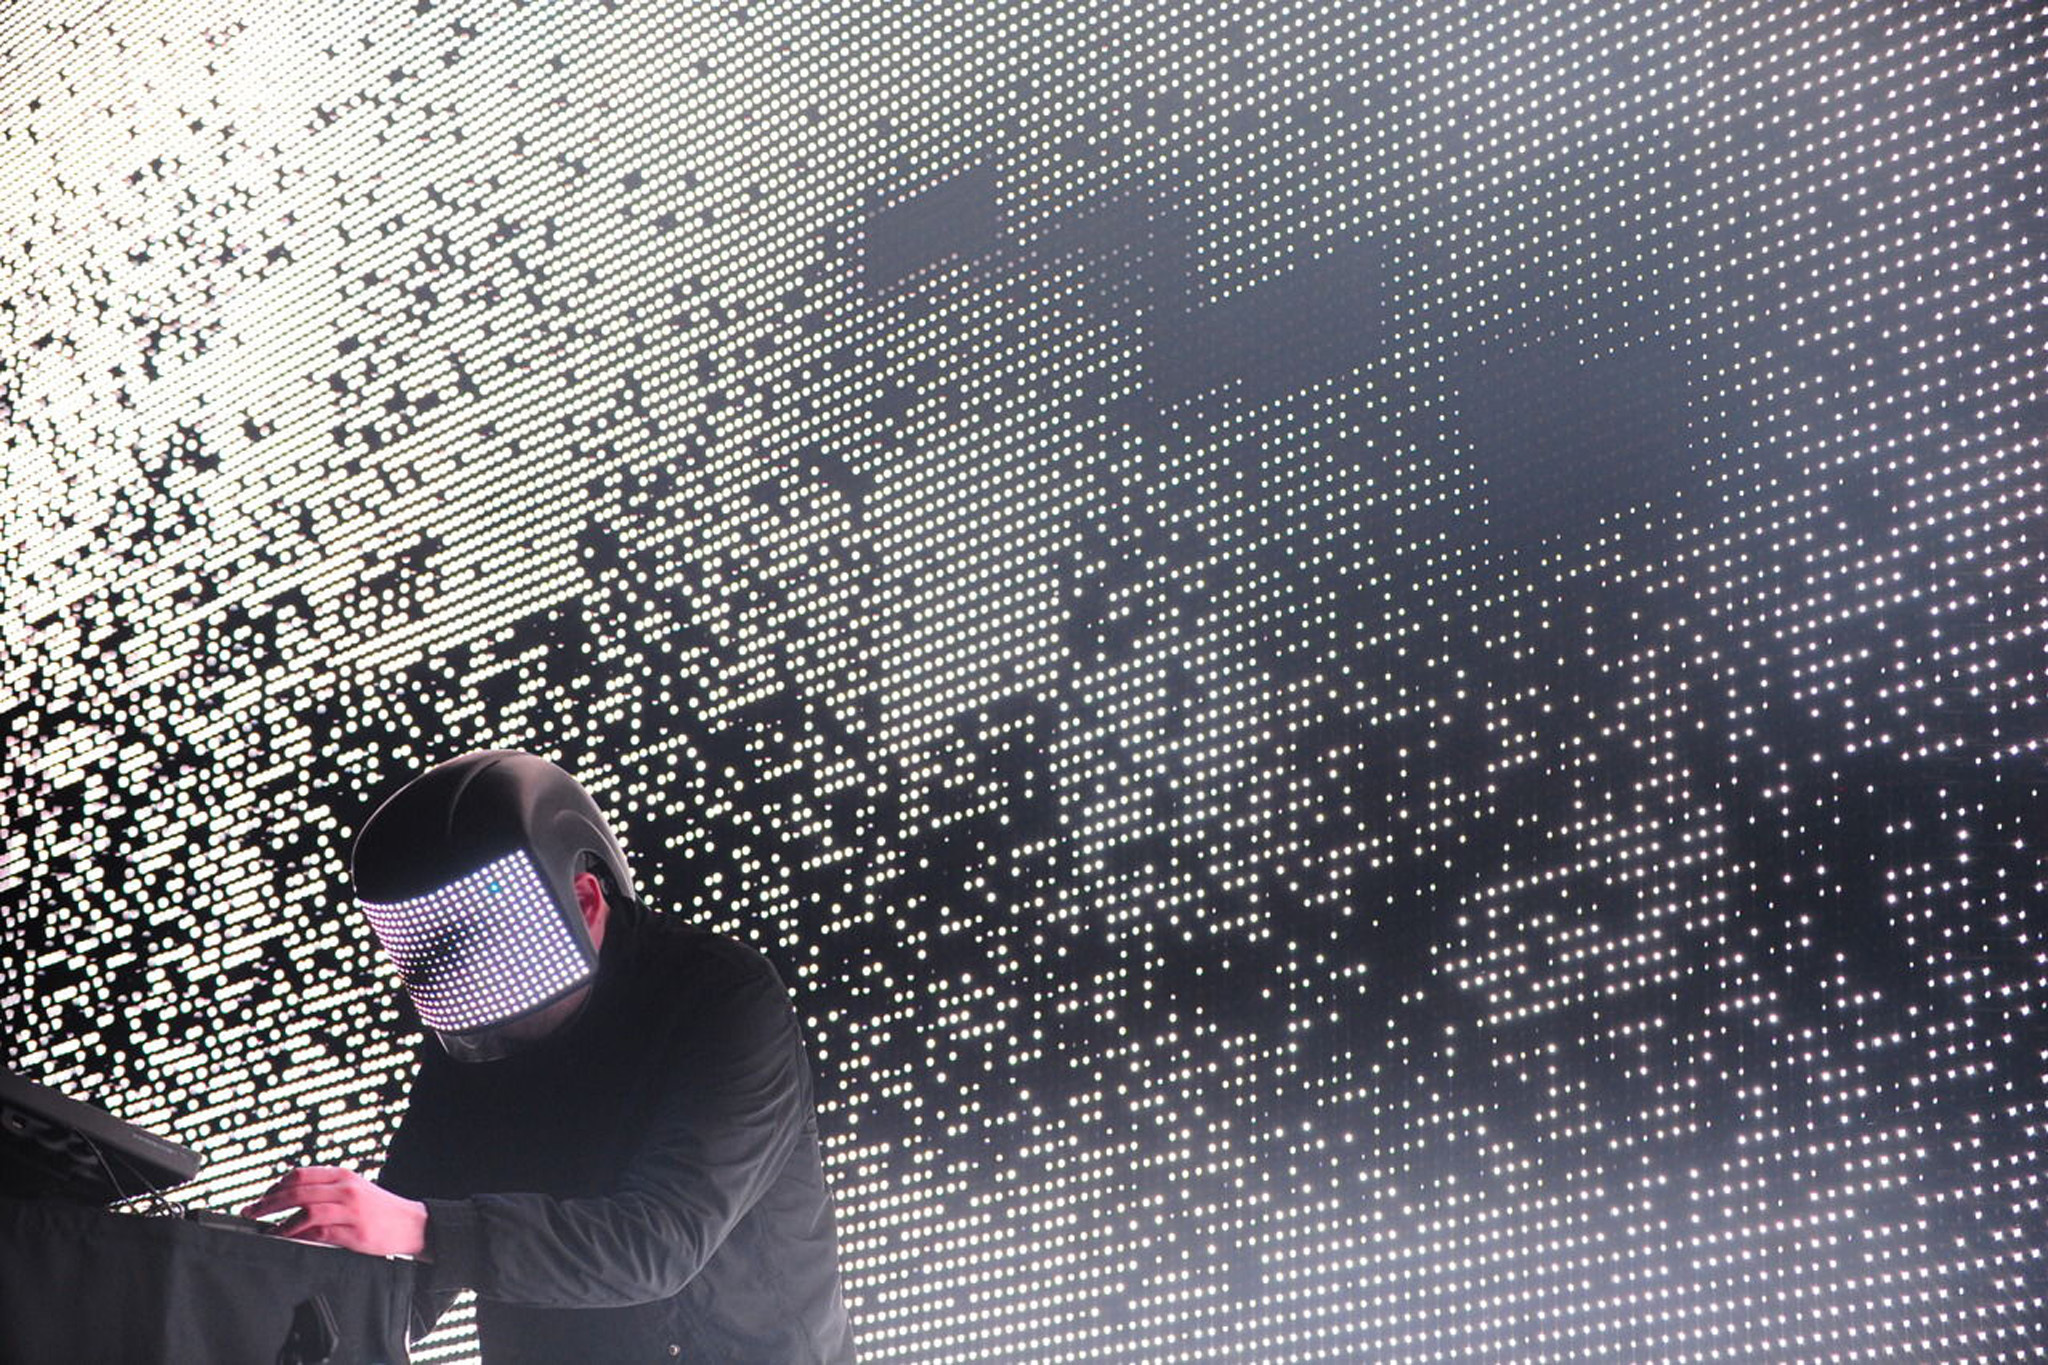 Interview: Electronic music's iconoclastic Squarepusher